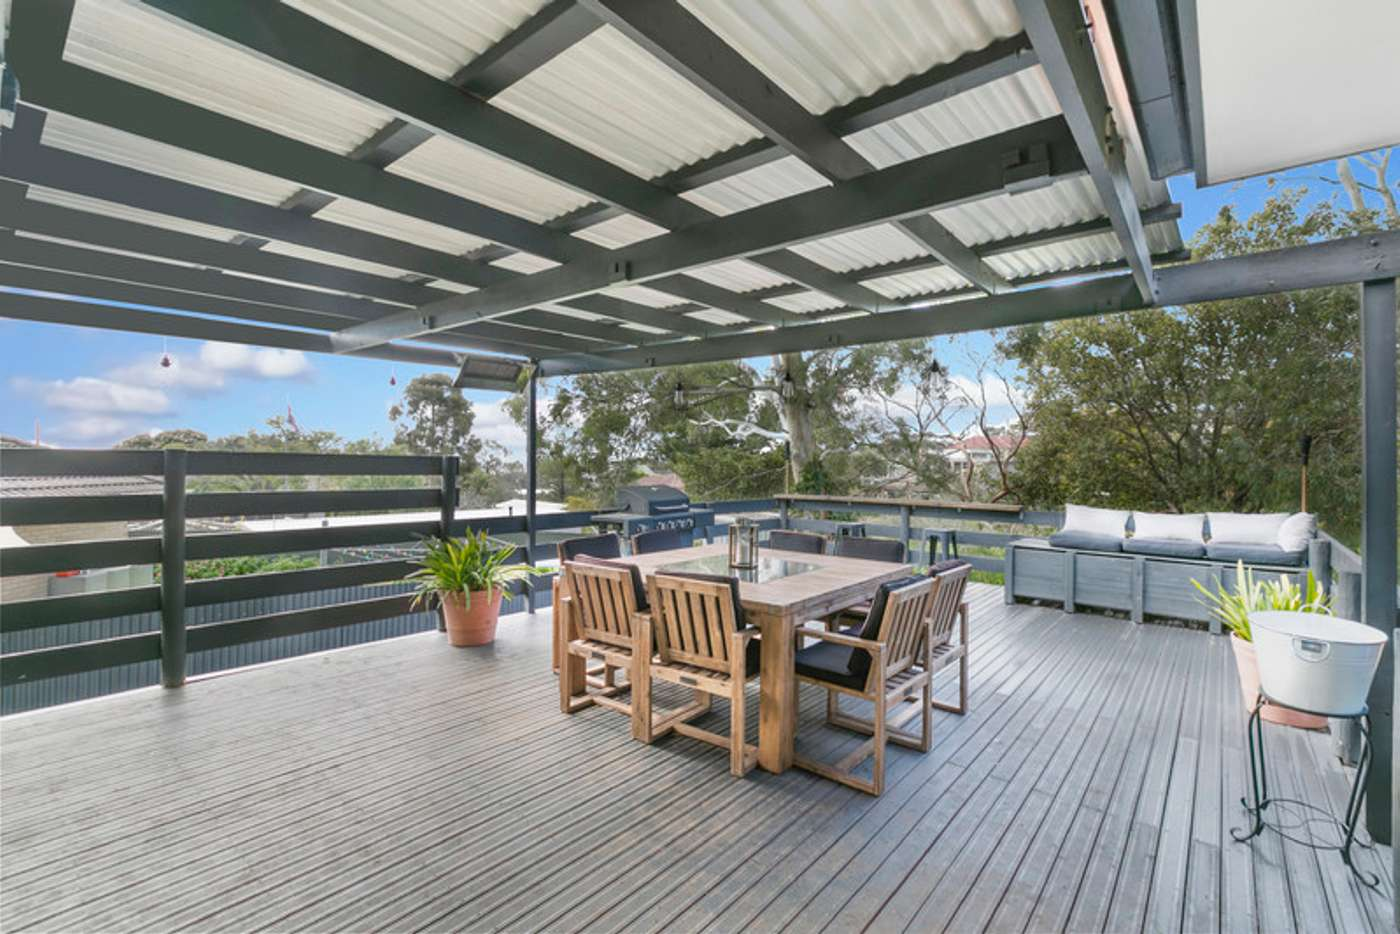 Sixth view of Homely house listing, 61 Eyre Street, Seaview Downs SA 5049